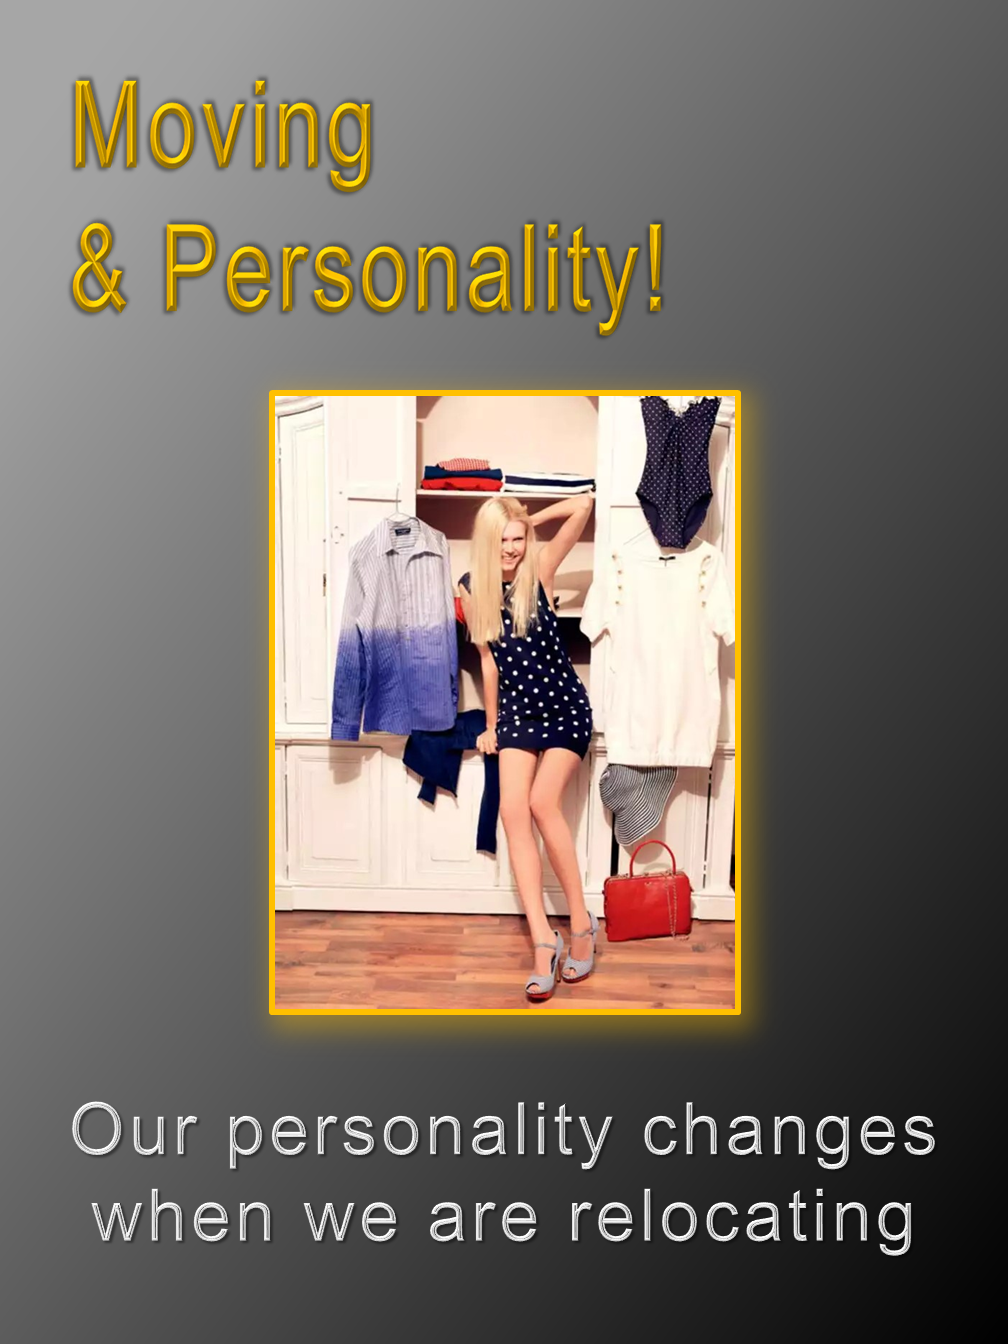 Moving & Personality